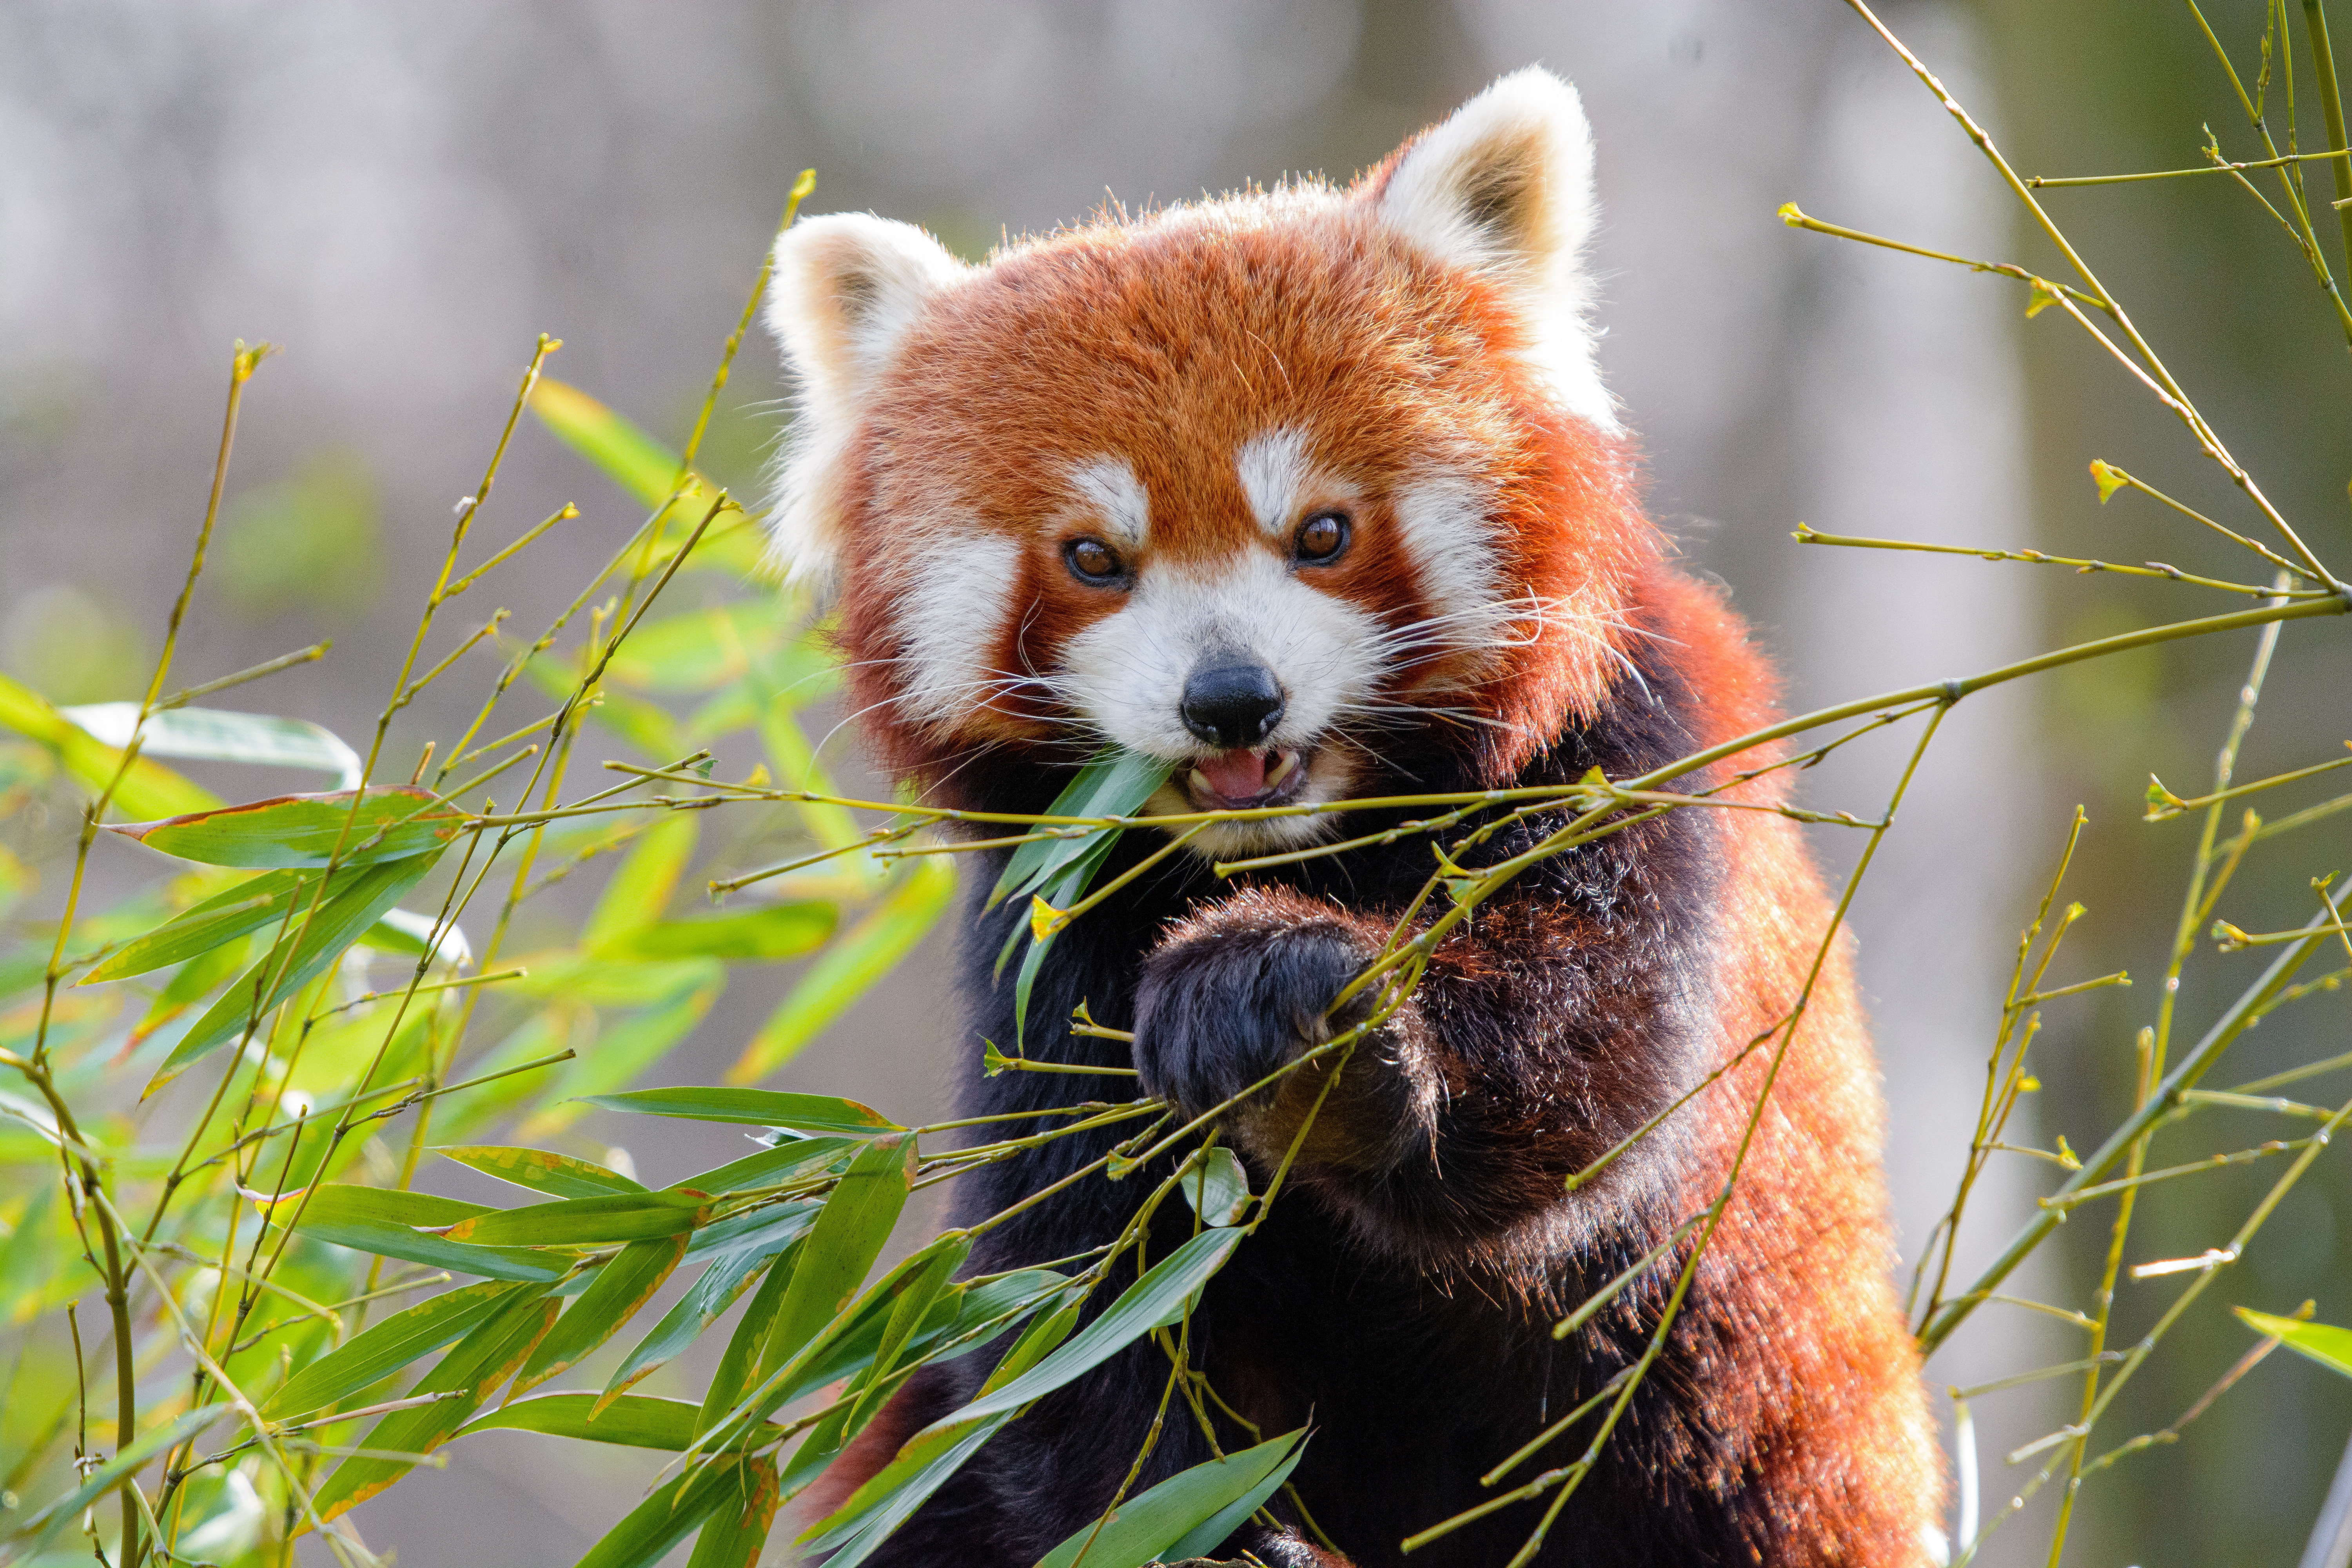 68847 download wallpaper Animals, Red Panda, Bamboo, Animal screensavers and pictures for free